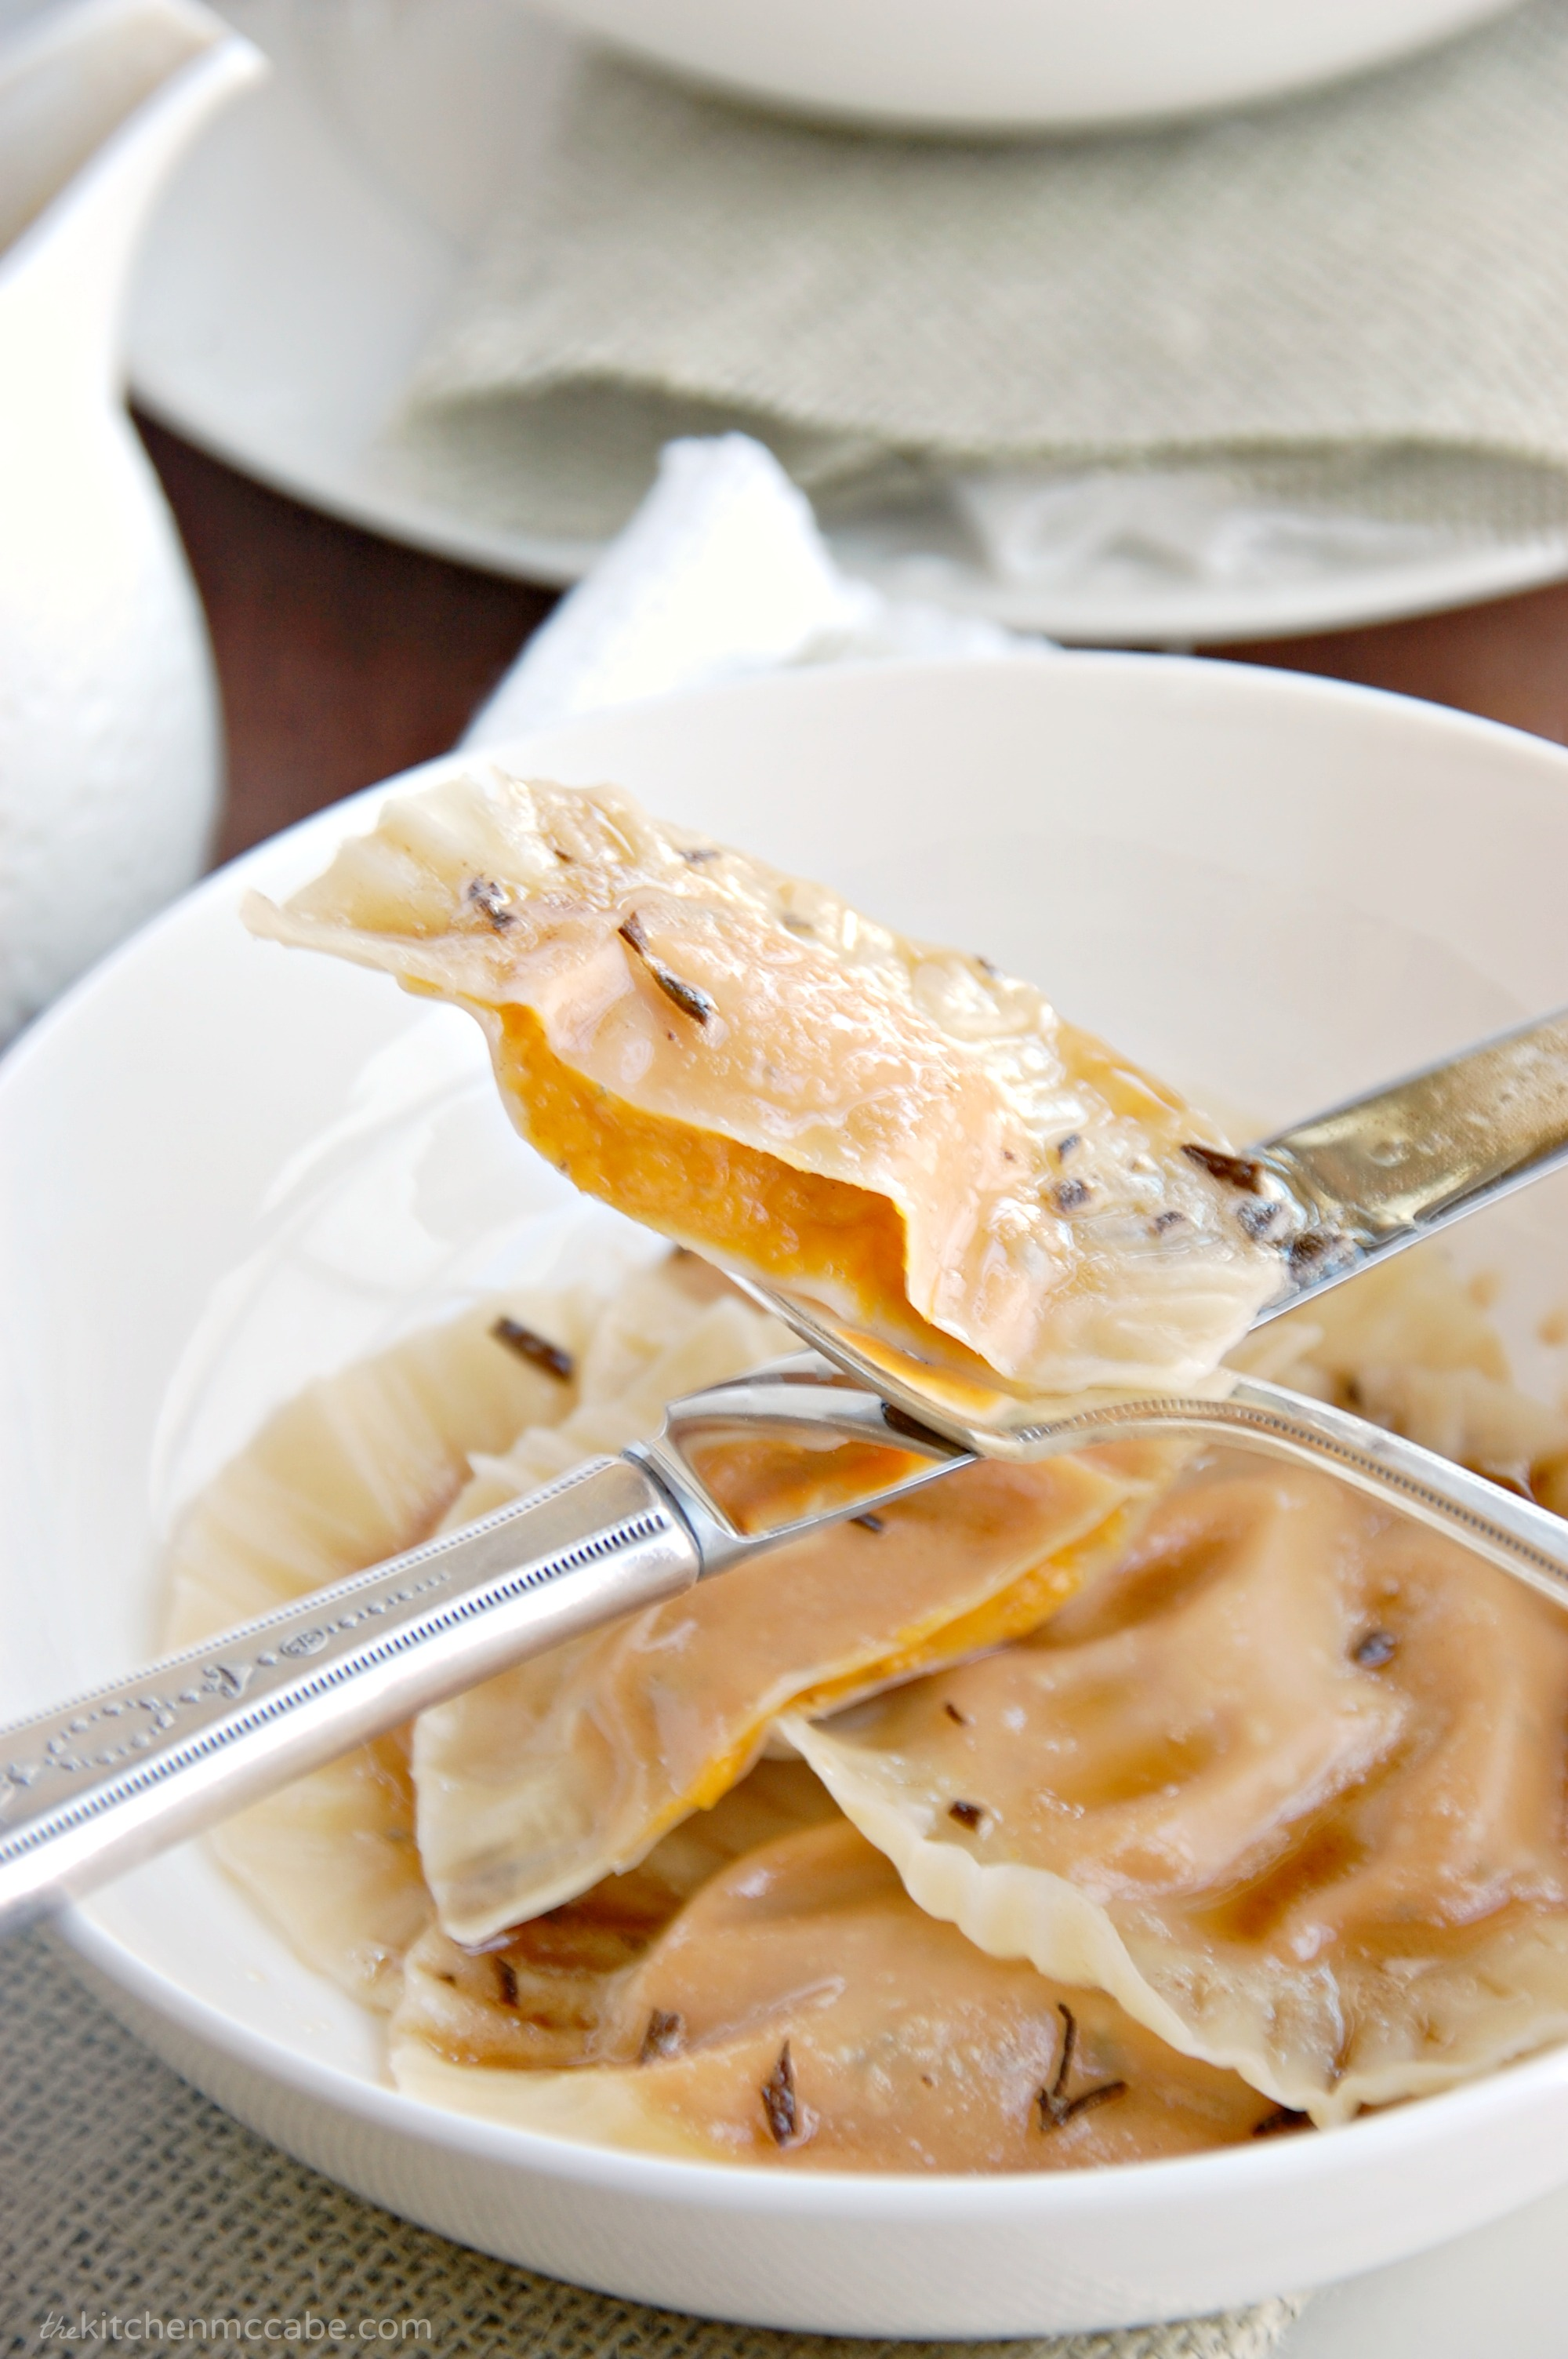 butternut squash ravioli with rosemary browned butter the